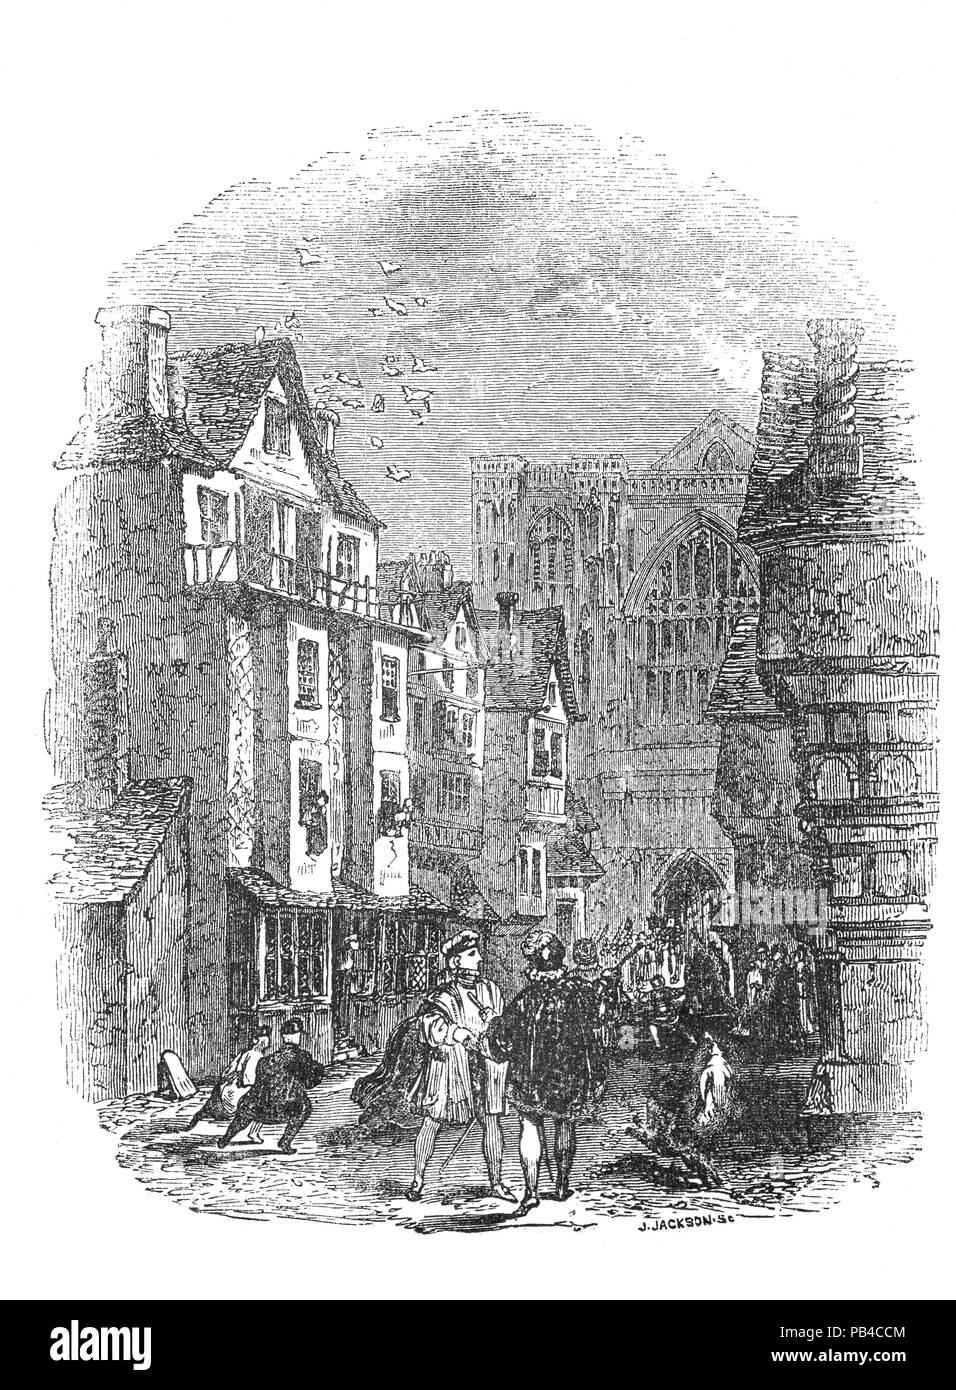 A street scene near Westminster Abbey on the day that Henry VIII's second wife, Anne Boleyn, was crowned queen consort on 1 June 1533 The queen gave birth to a daughter slightly prematurely on 7 September 1533. The child was christened Elizabeth, in honour of Henry's mother, Elizabeth of York. - Stock Image